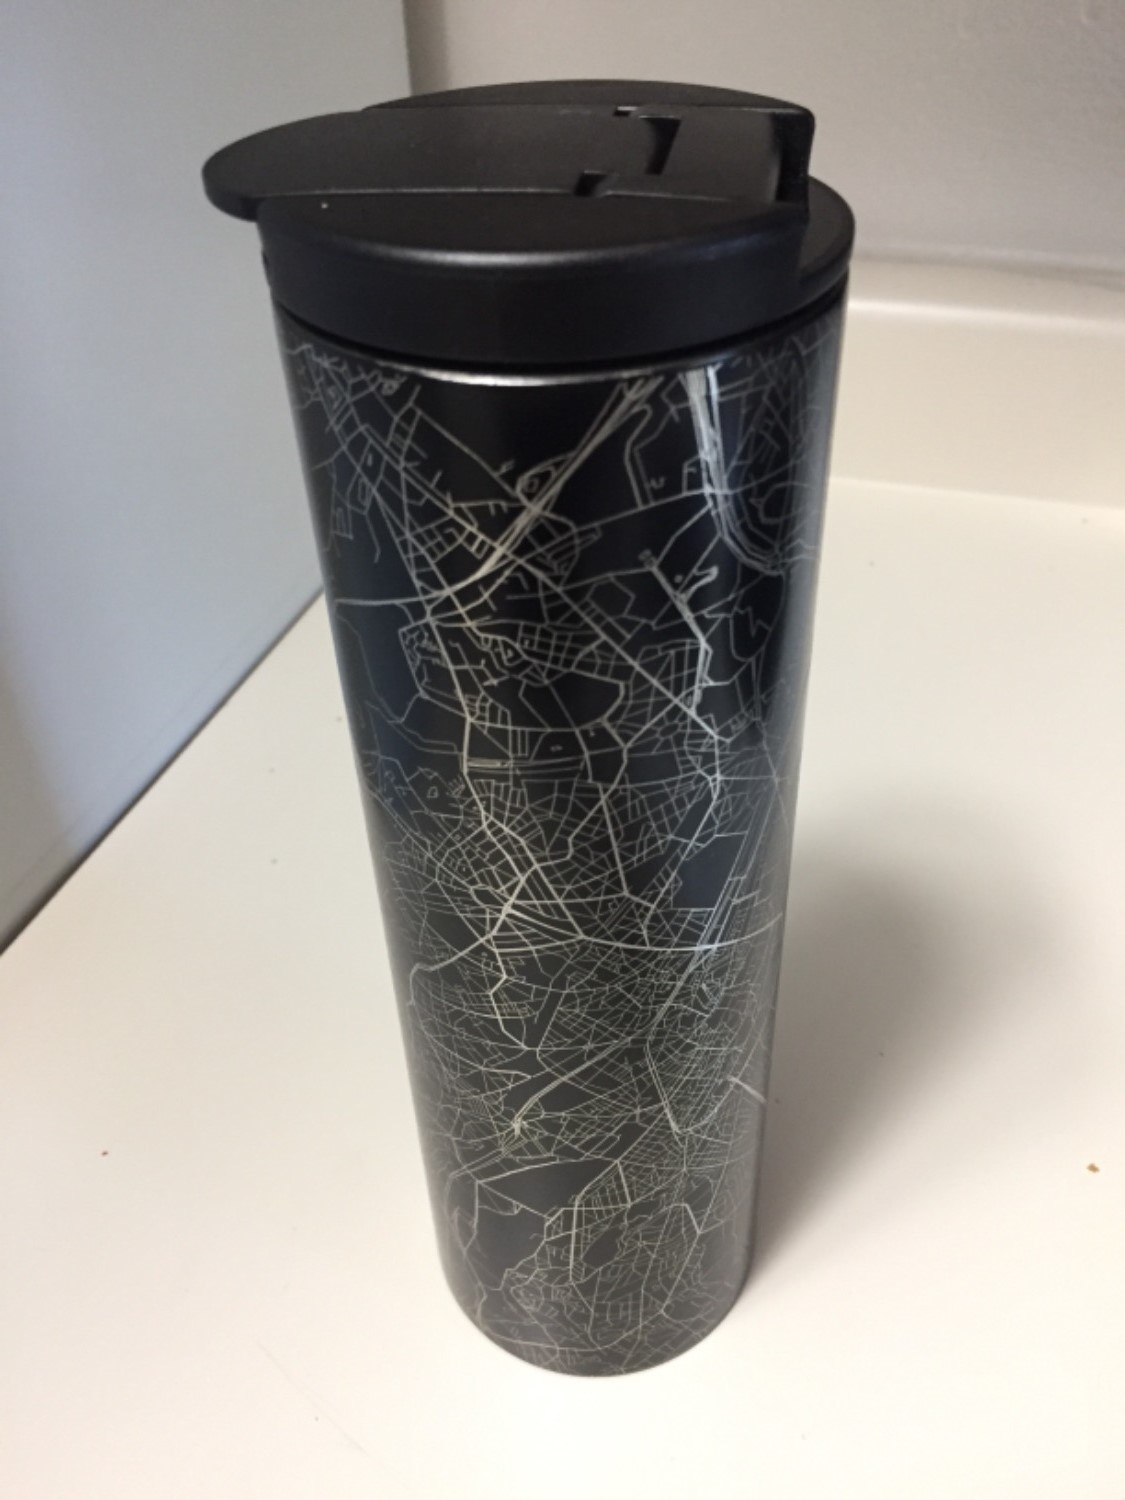 4217cc22b0c High quality and great design. Highly recommend! Dmitry V. Share · 17oz Stainless  Steel Midnight Tumbler